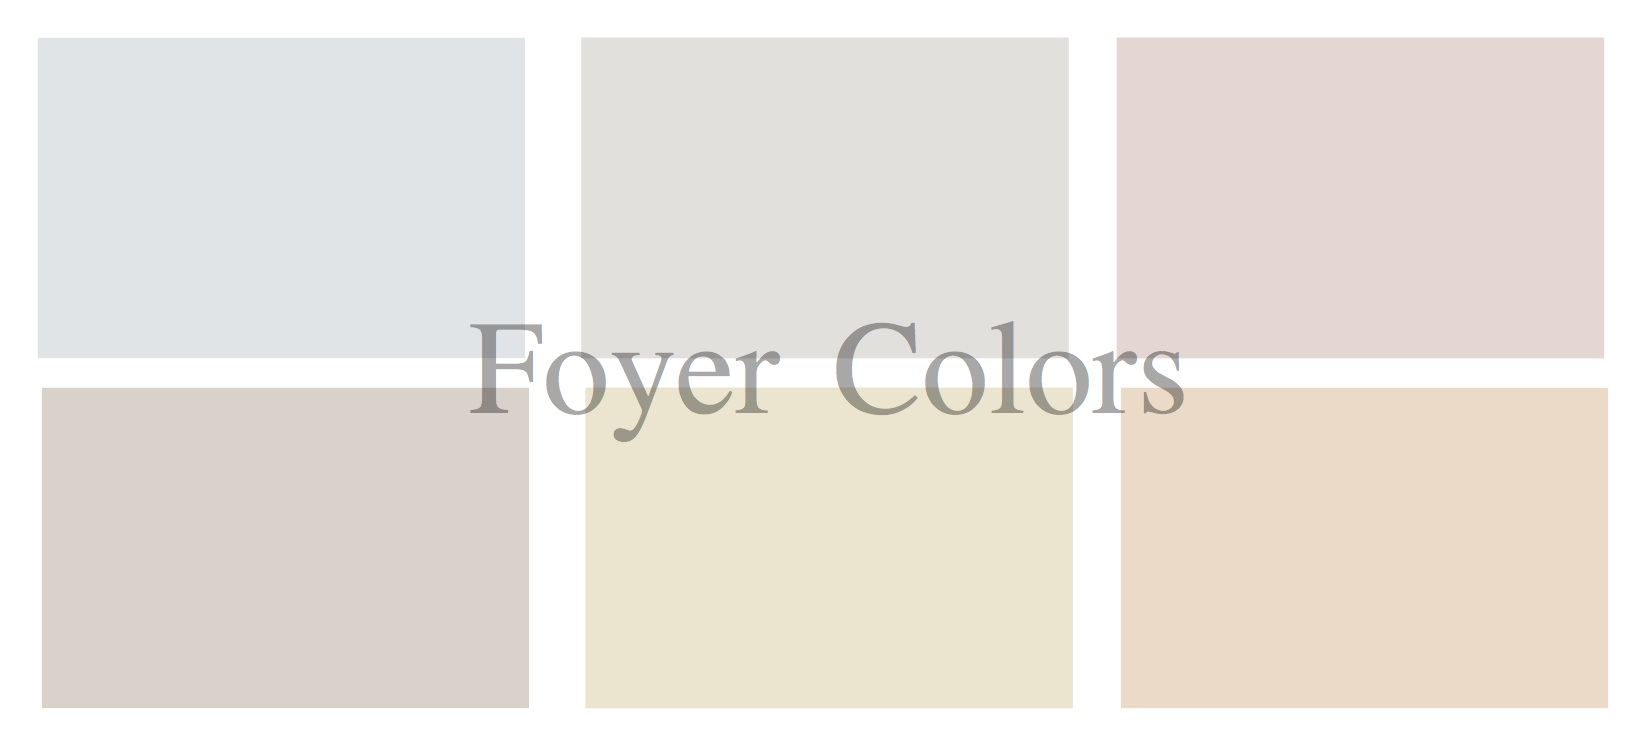 The Coastal Sunrise As Seen In Photograph Has Such Perfect Color Choices For Your Foyer Typically Soft Or Lighter Colors Are Chosen